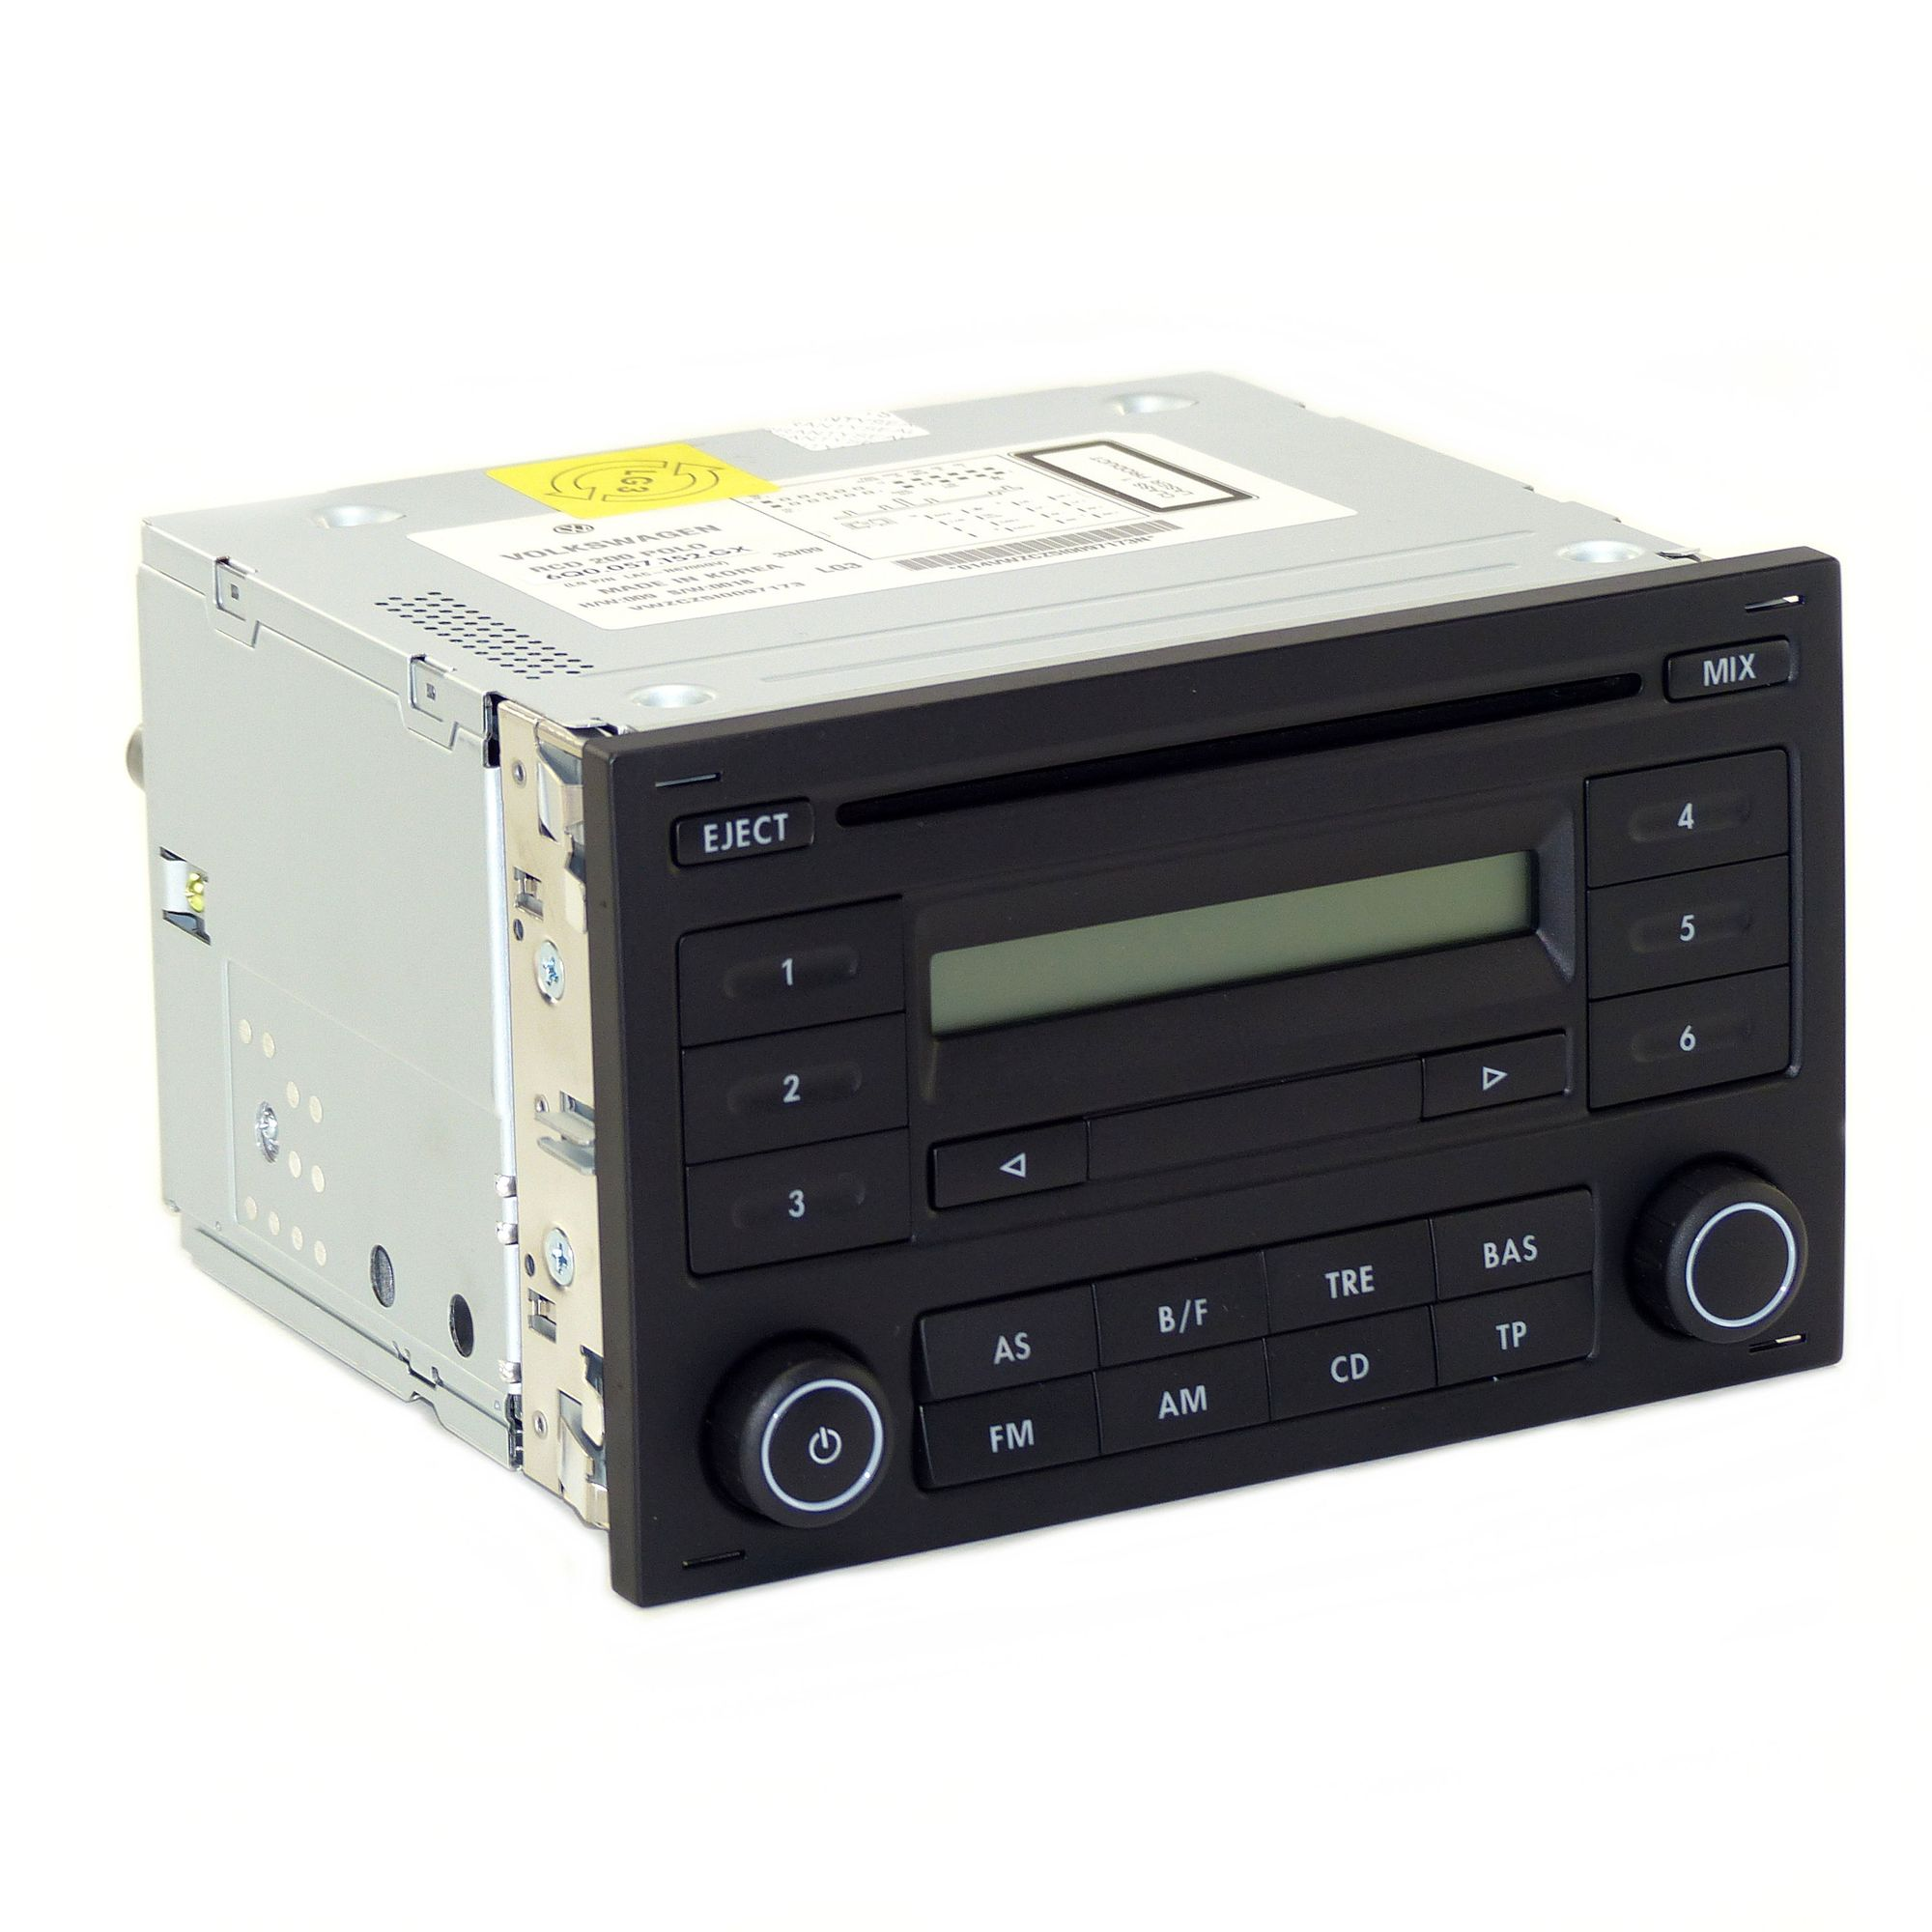 Autoradio Polo 9n : autoradio radio rcd 200 mit cd player vw polo 9n 9n3 golf ~ Jslefanu.com Haus und Dekorationen